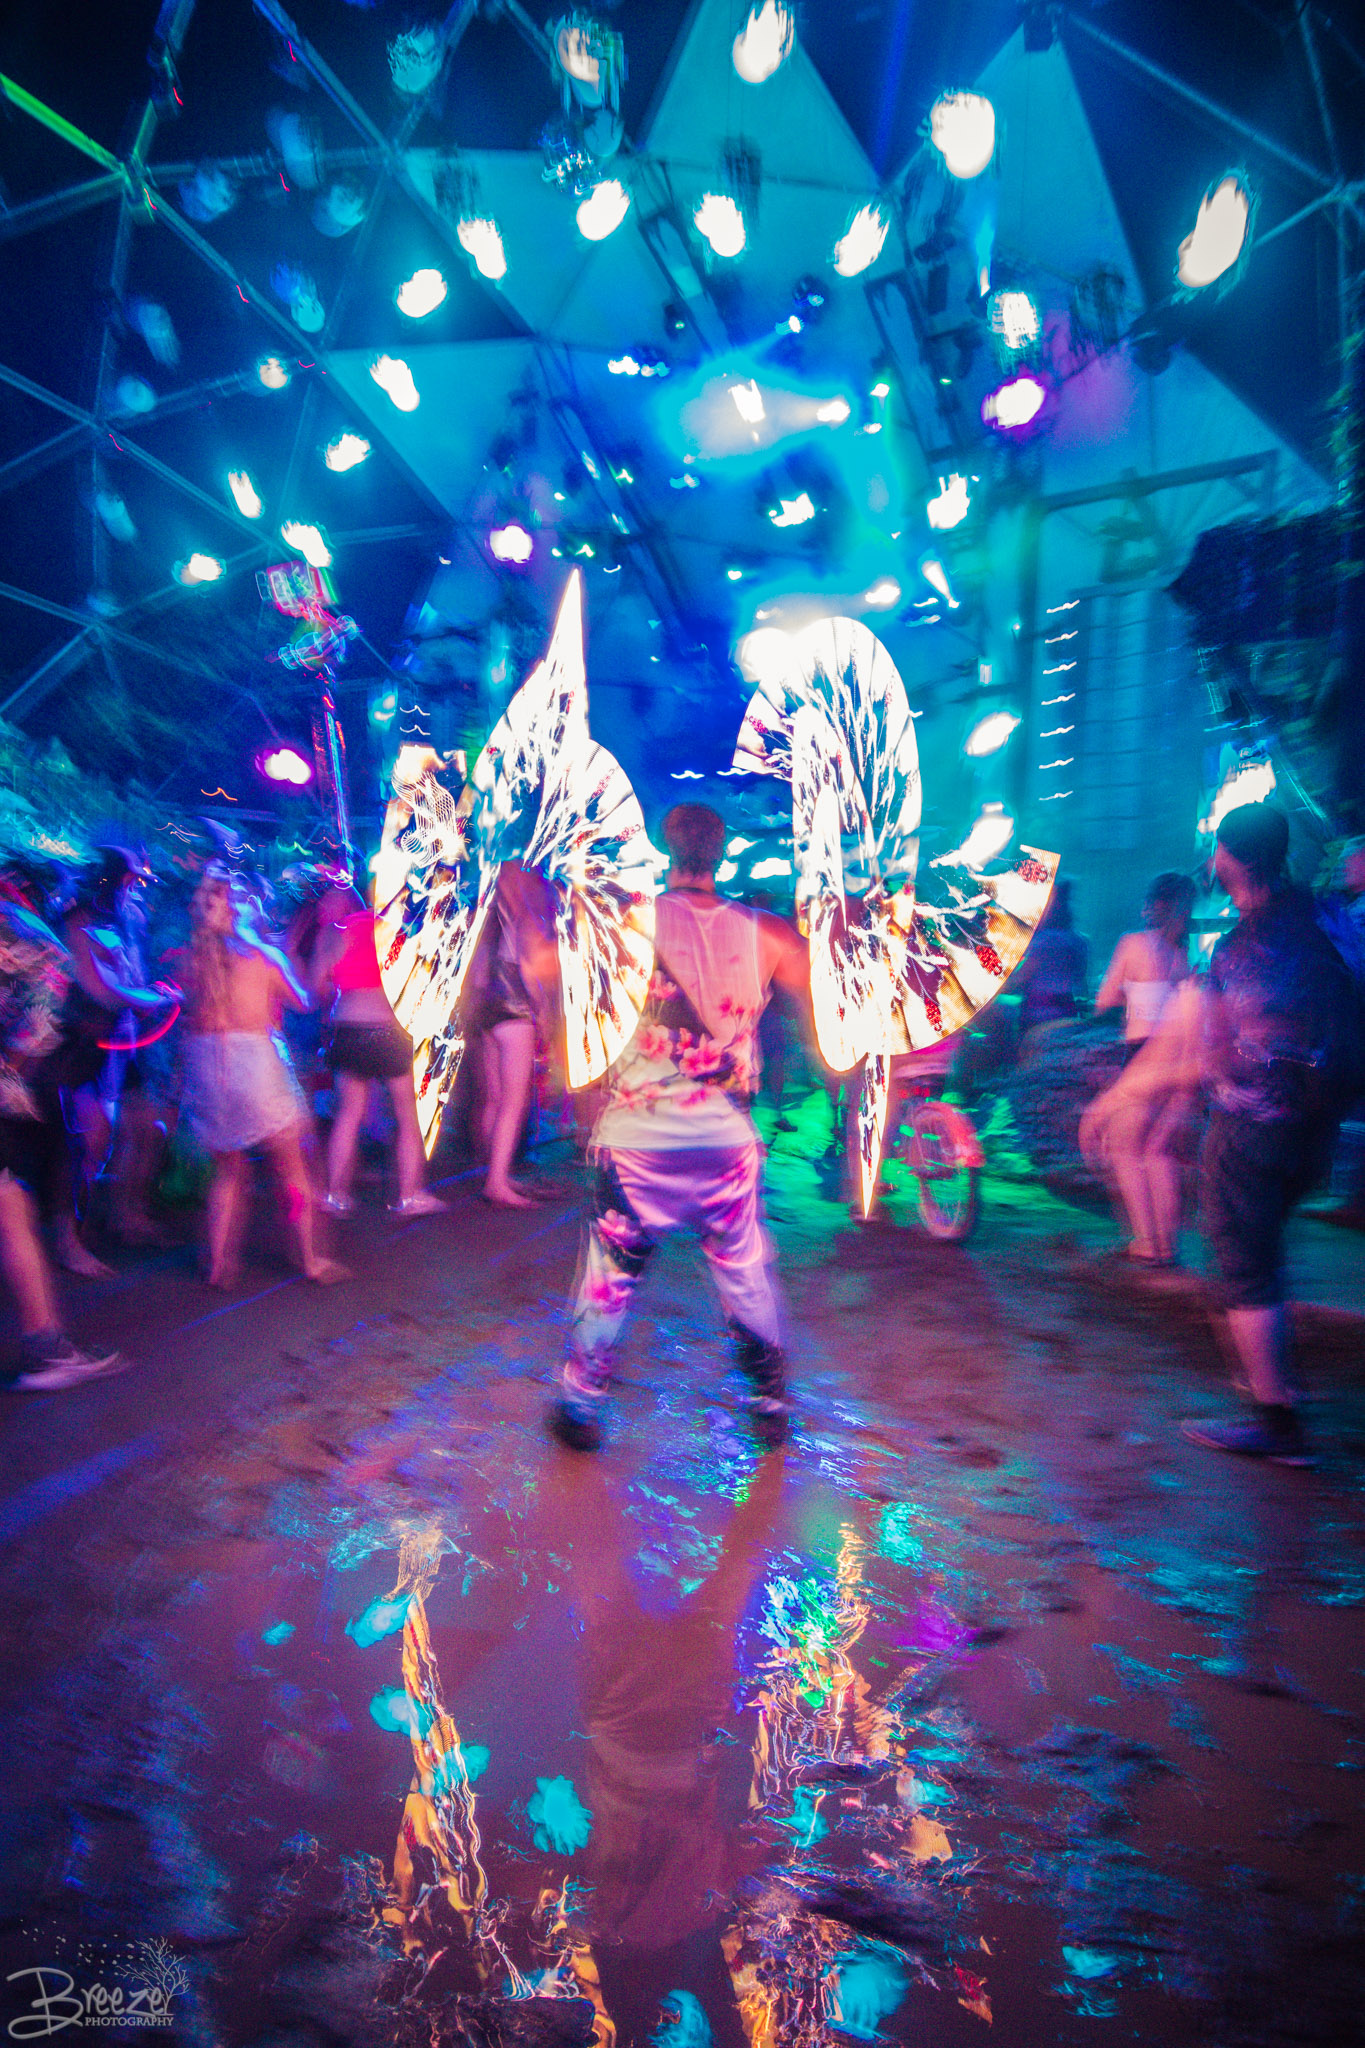 Brie'Ana Breeze Photography & Media - Shambhala 2018-0875.jpg